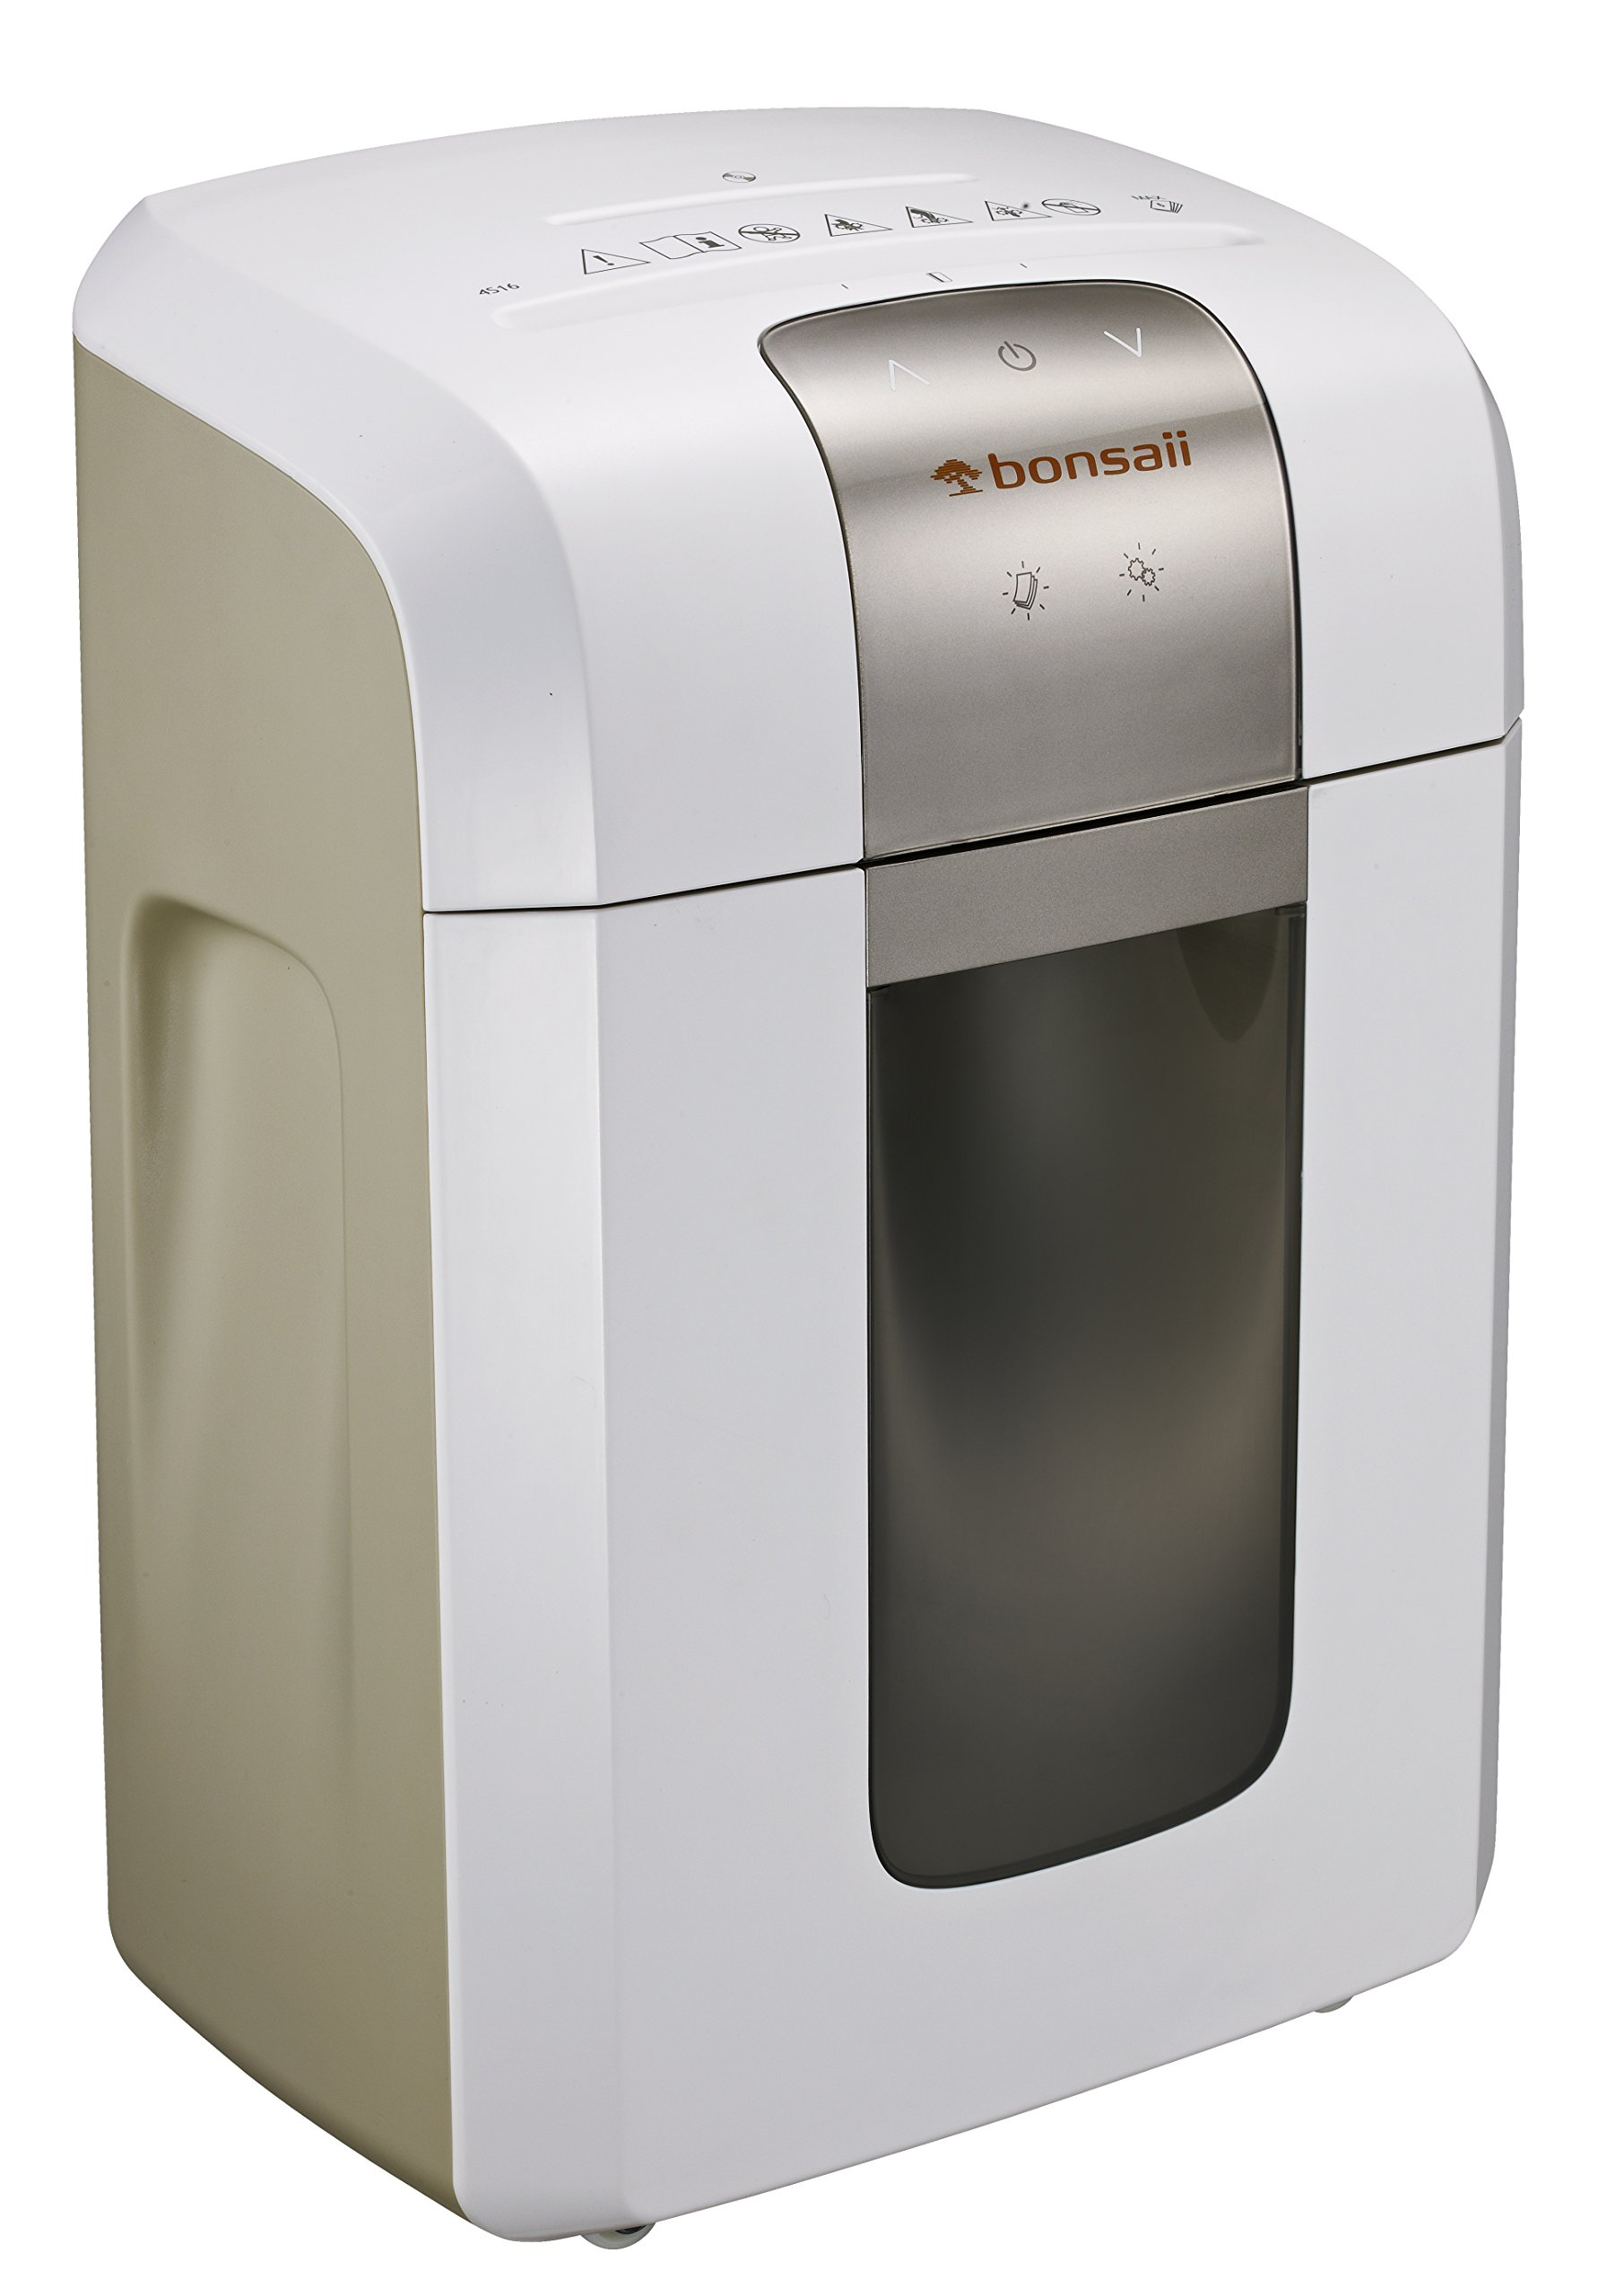 Bonsaii Heavy Duty Paper Shredder, 12-Sheet Cross-Cut with 60 Minutes Continuous Running Time, Quiet Shredders Machine for Office/Home Use, Shreds CD/Credit Card/Staples, White(EverShred Pro 3S16) by bonsaii